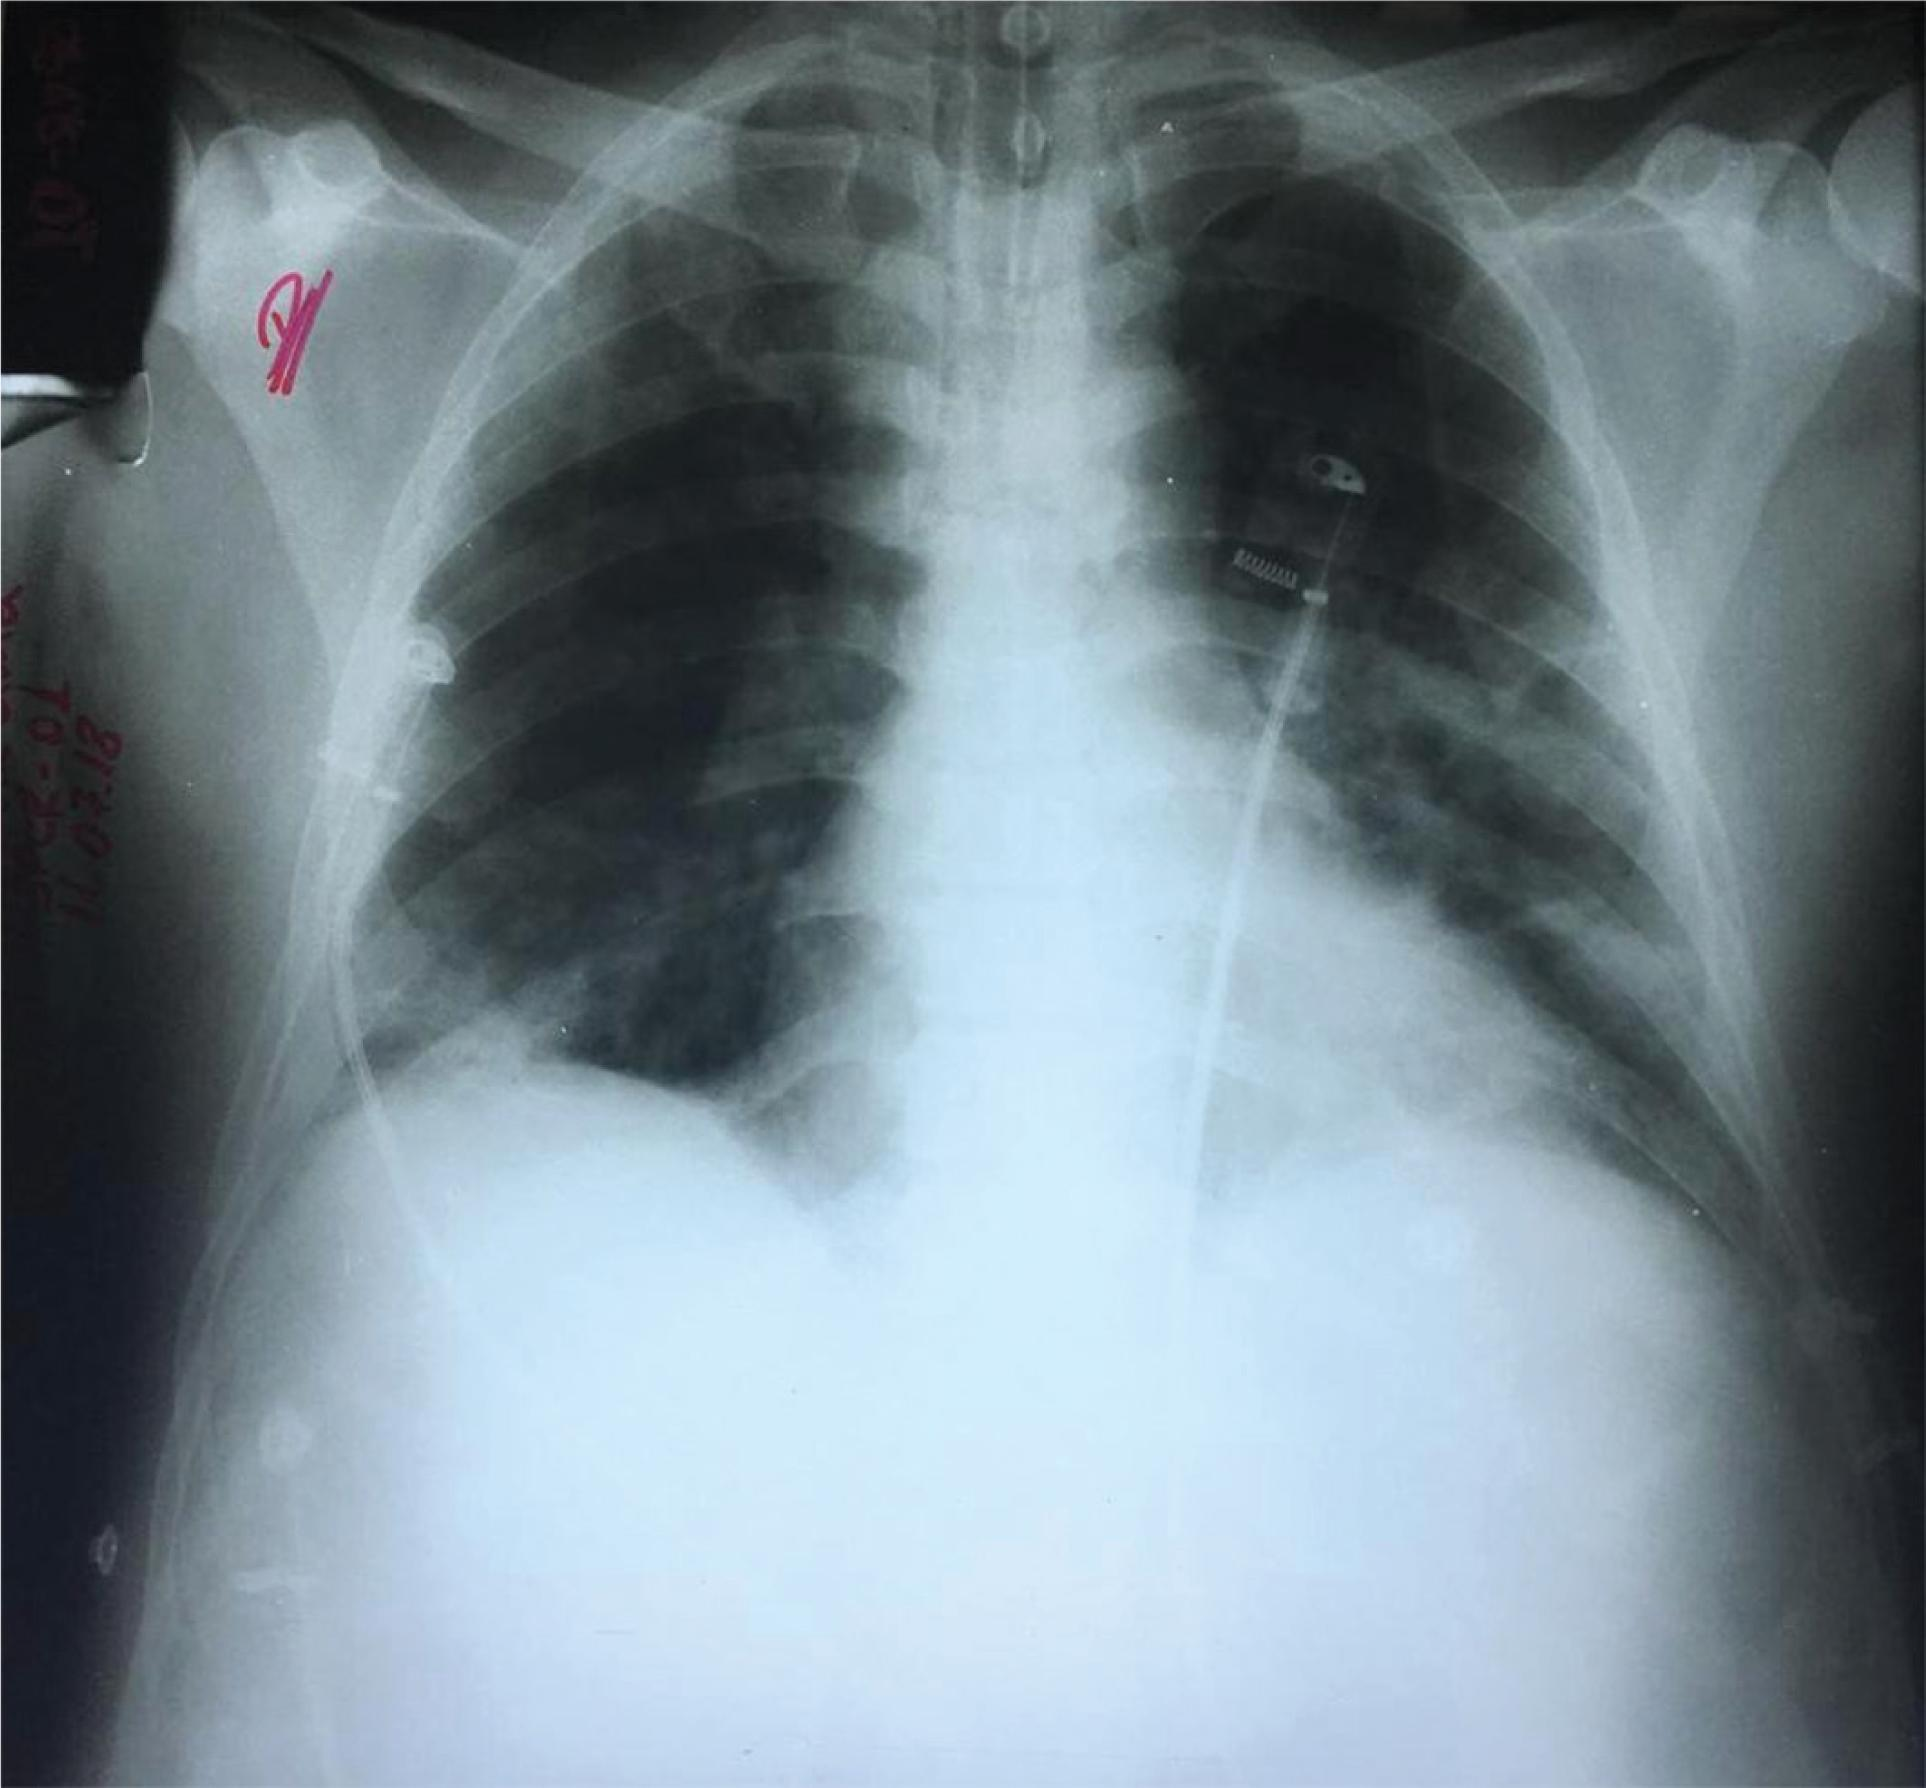 Chest x-ray taken on the third day of hospitalization showing areas of confluent peribronchial consolidation.